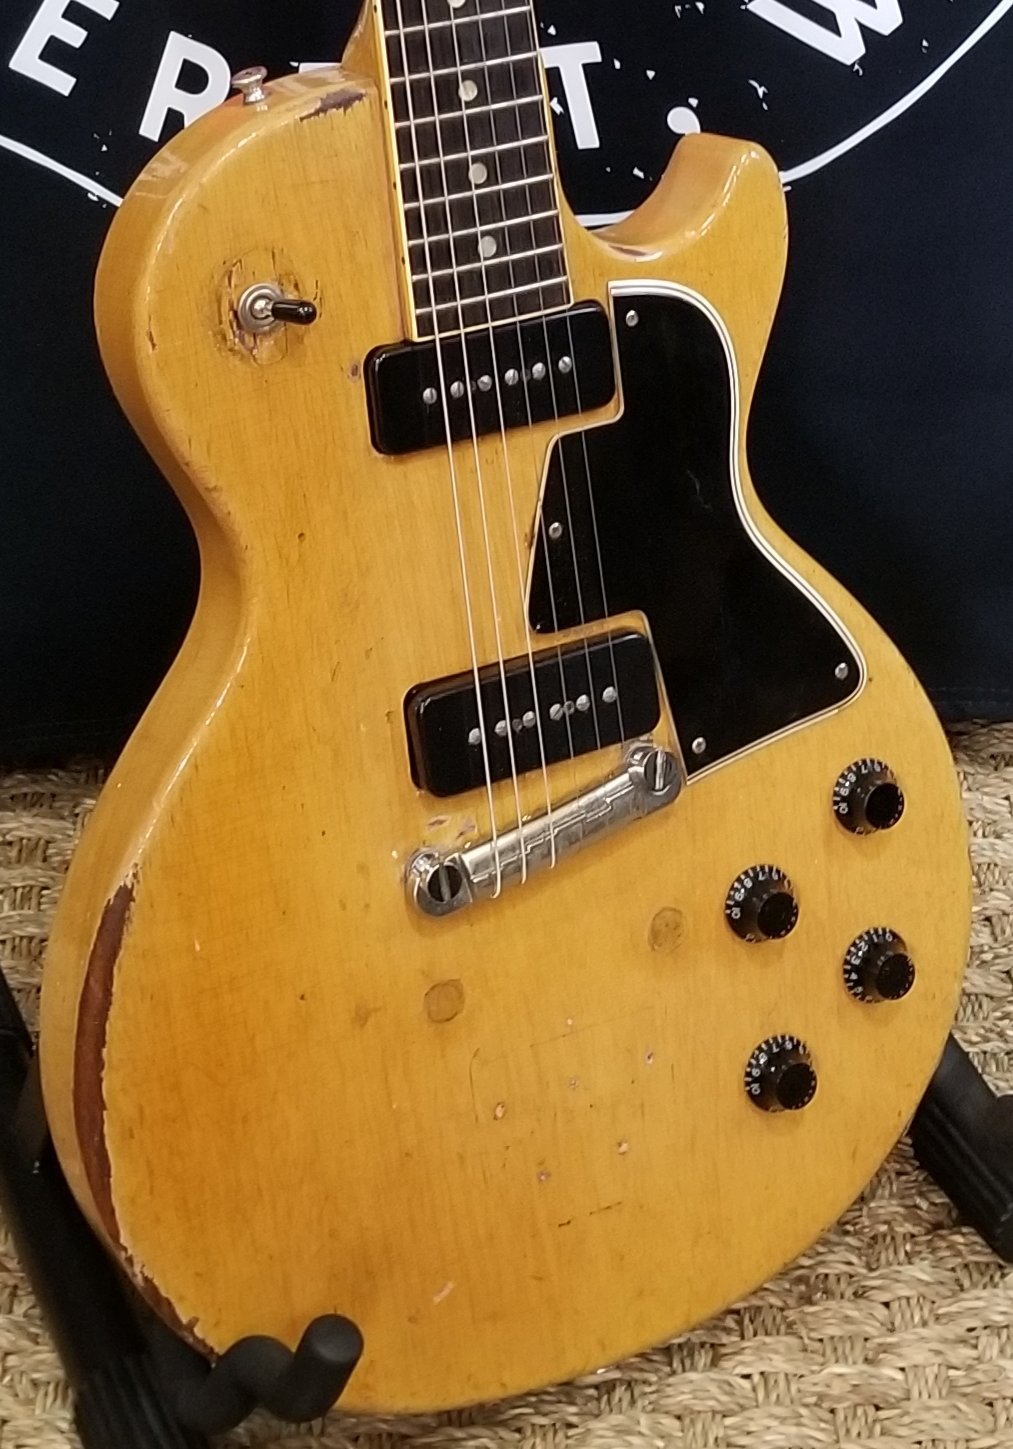 1955 Gibson Les Paul Special TV